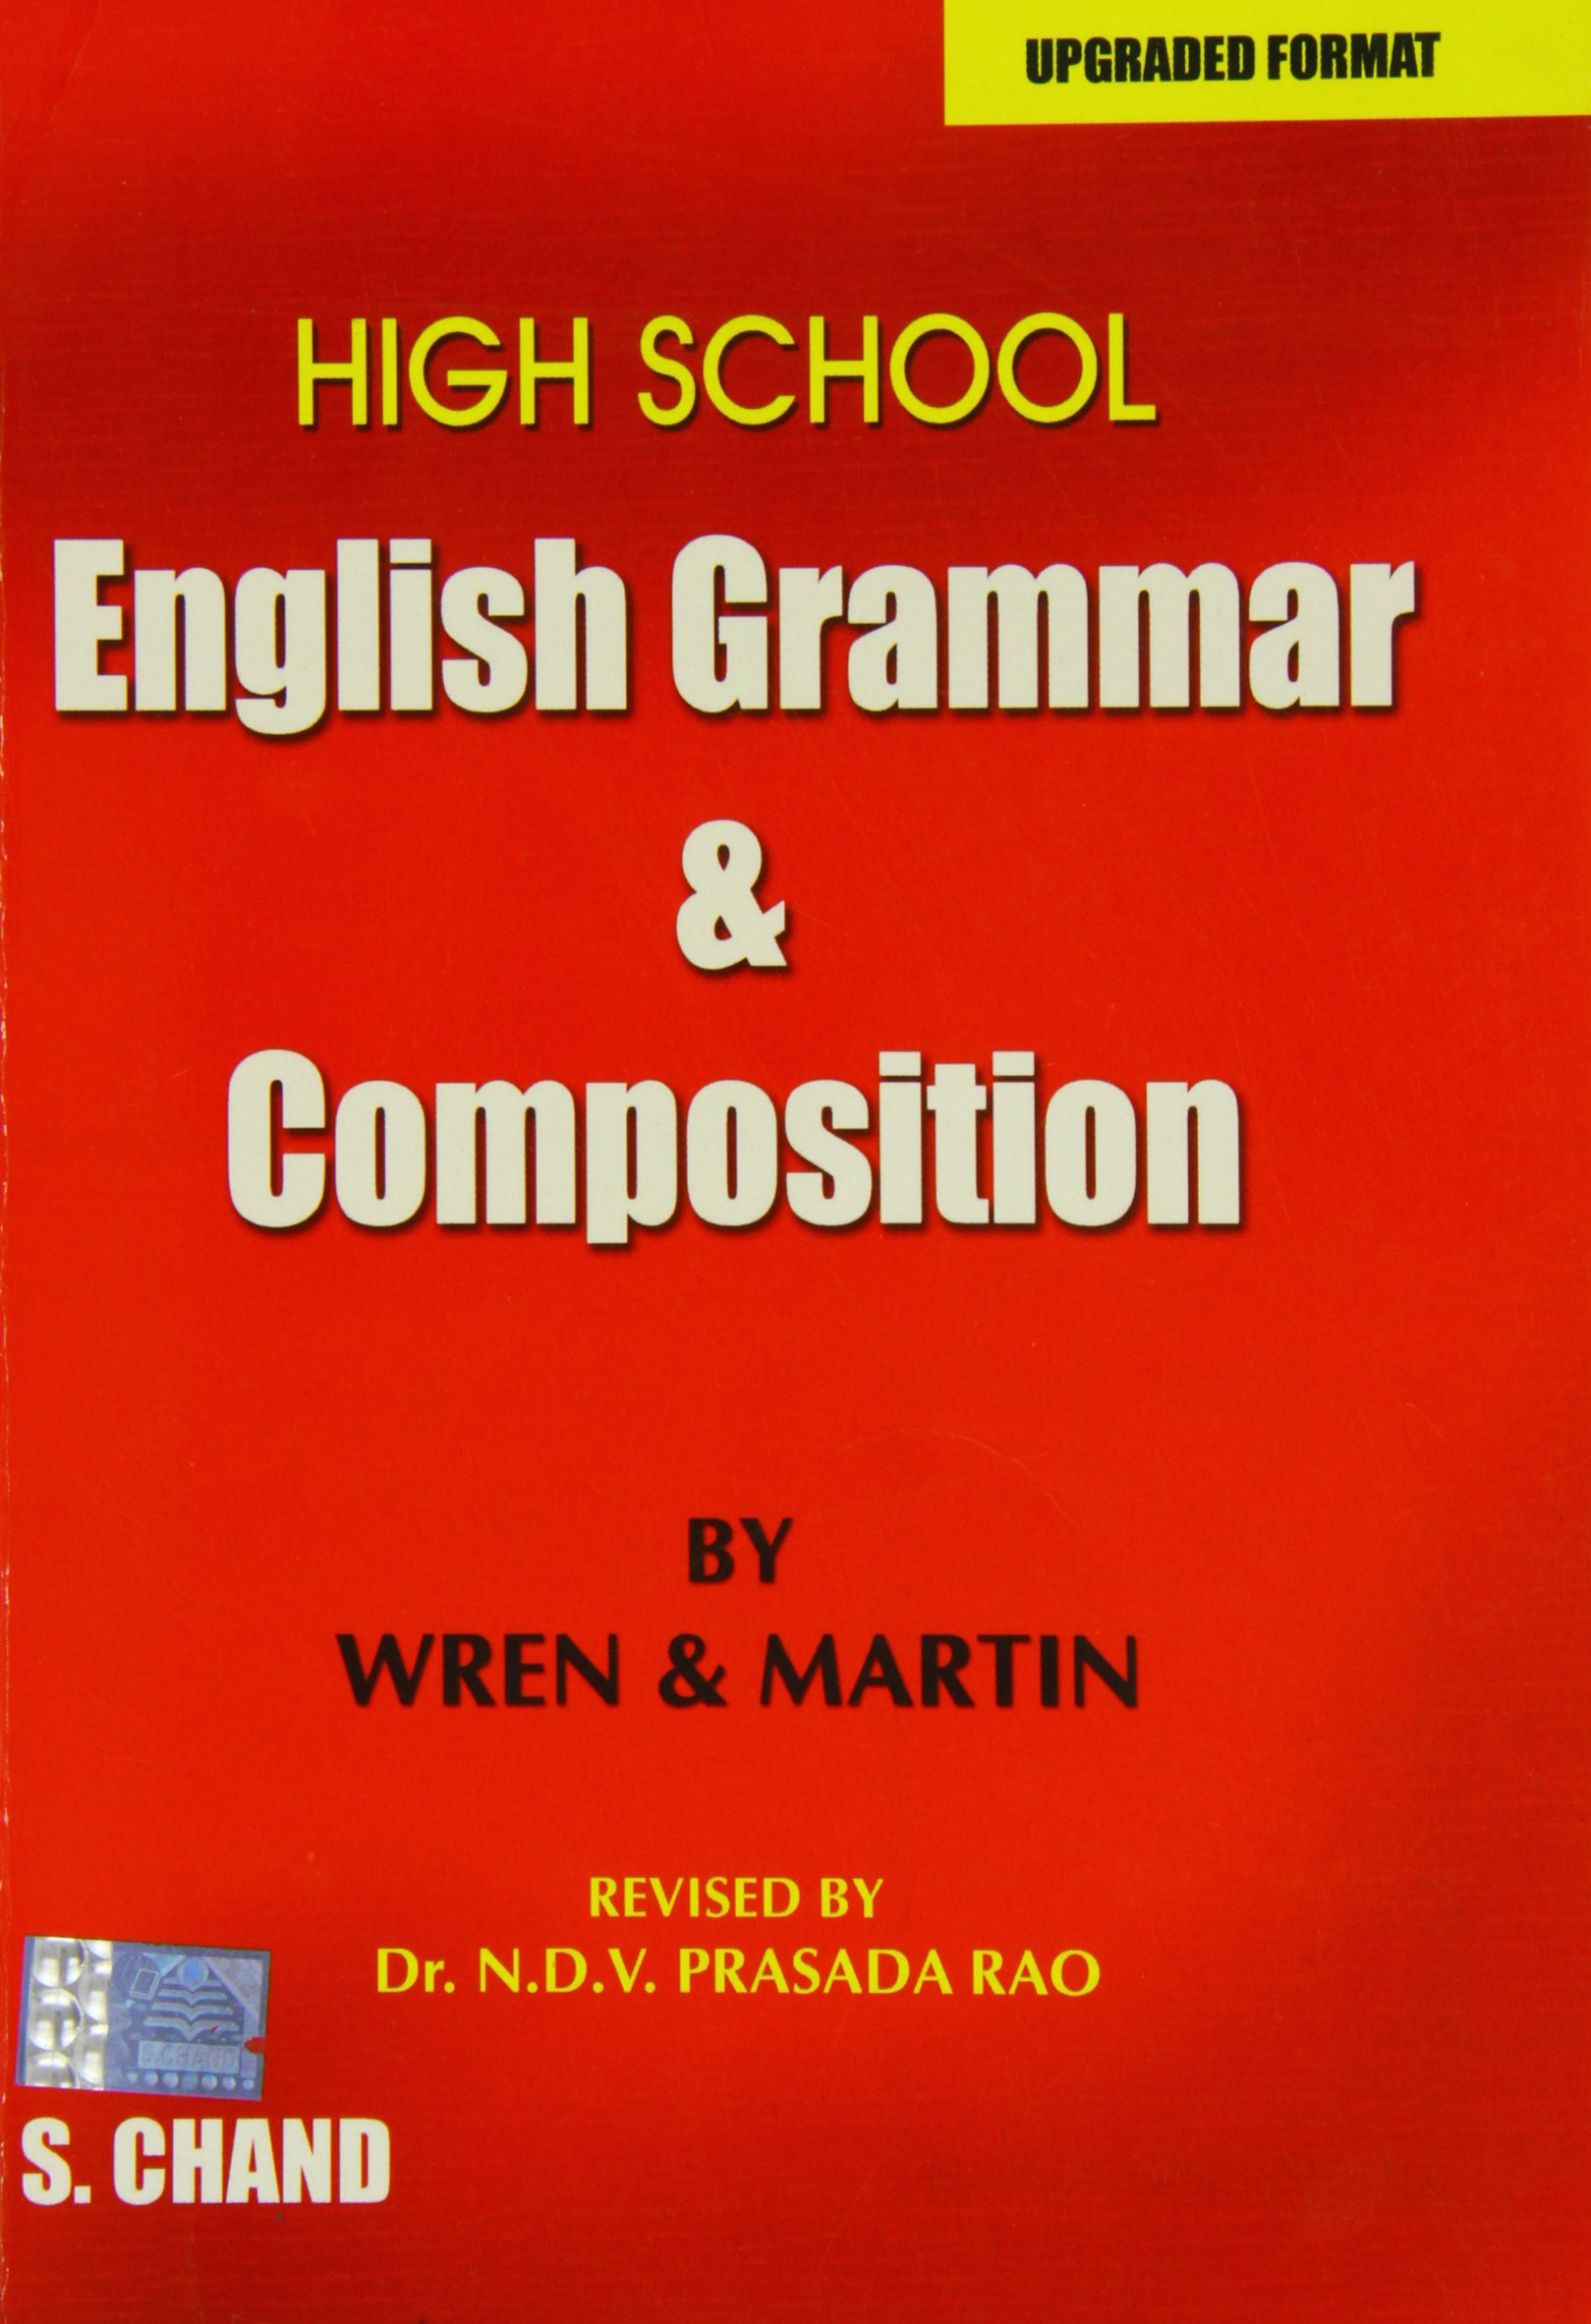 High School English Grammar and position by Wren & Martin